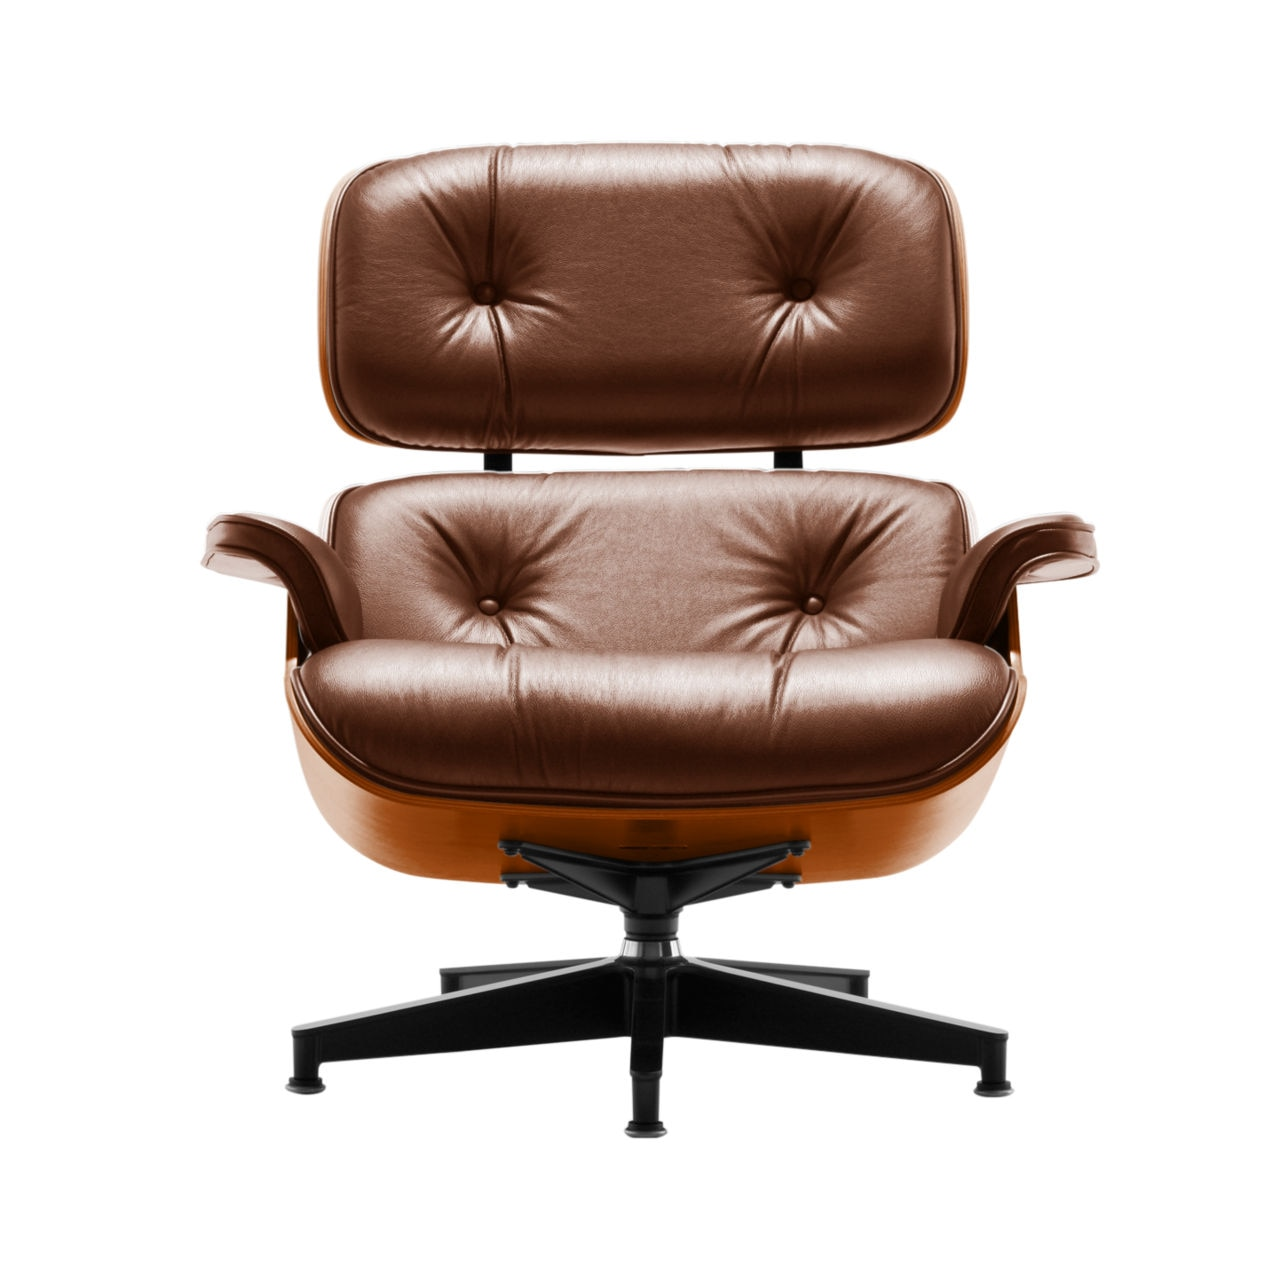 Eames Lounge Chair in Cobblestone MCL Leather by Herman Miller